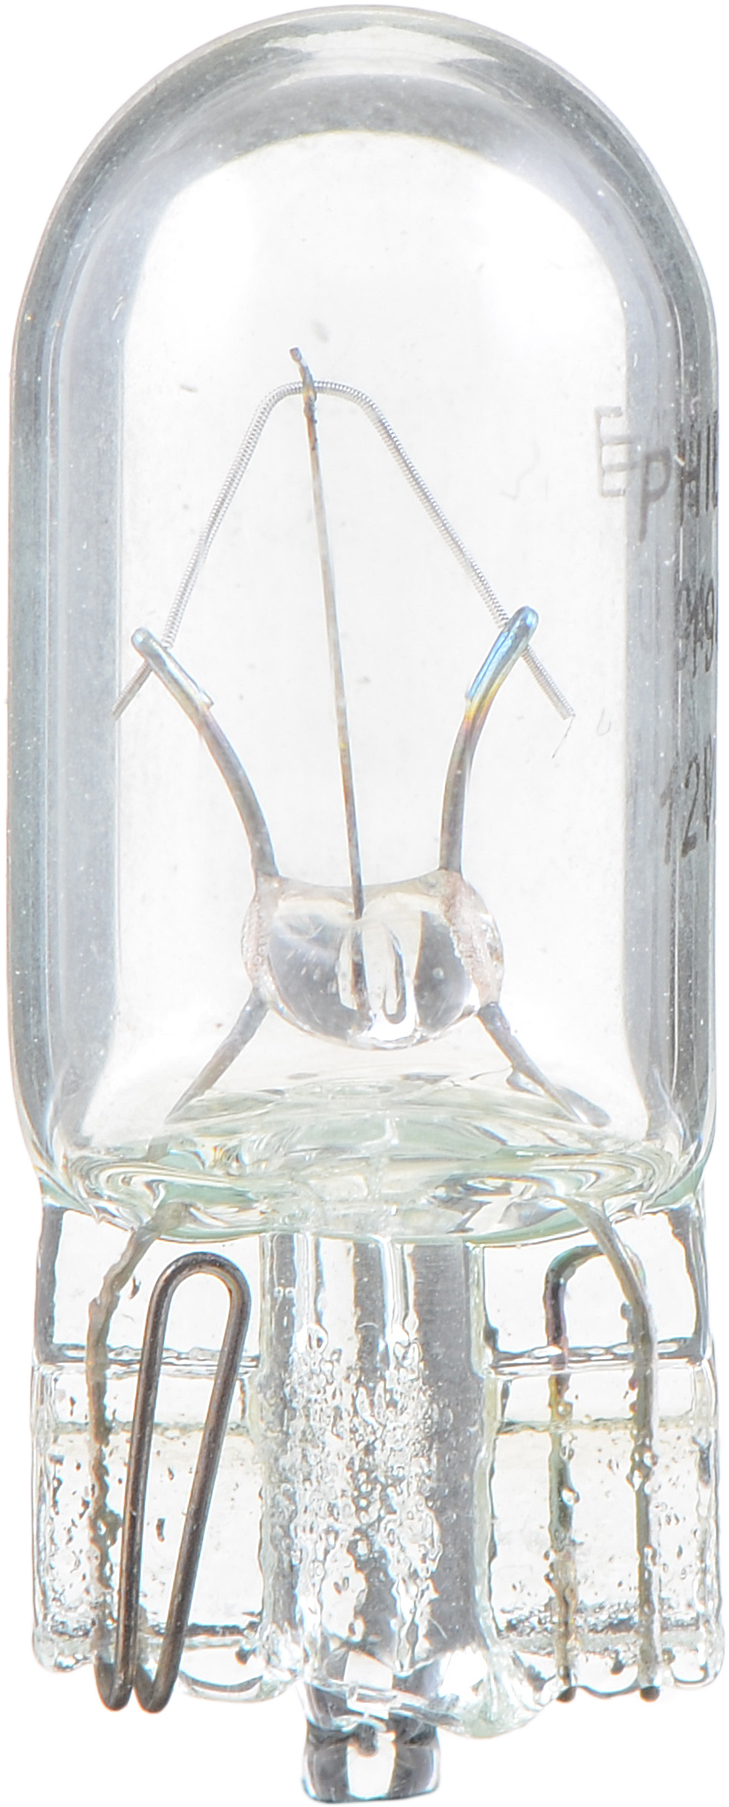 Radio Display Light Bulb